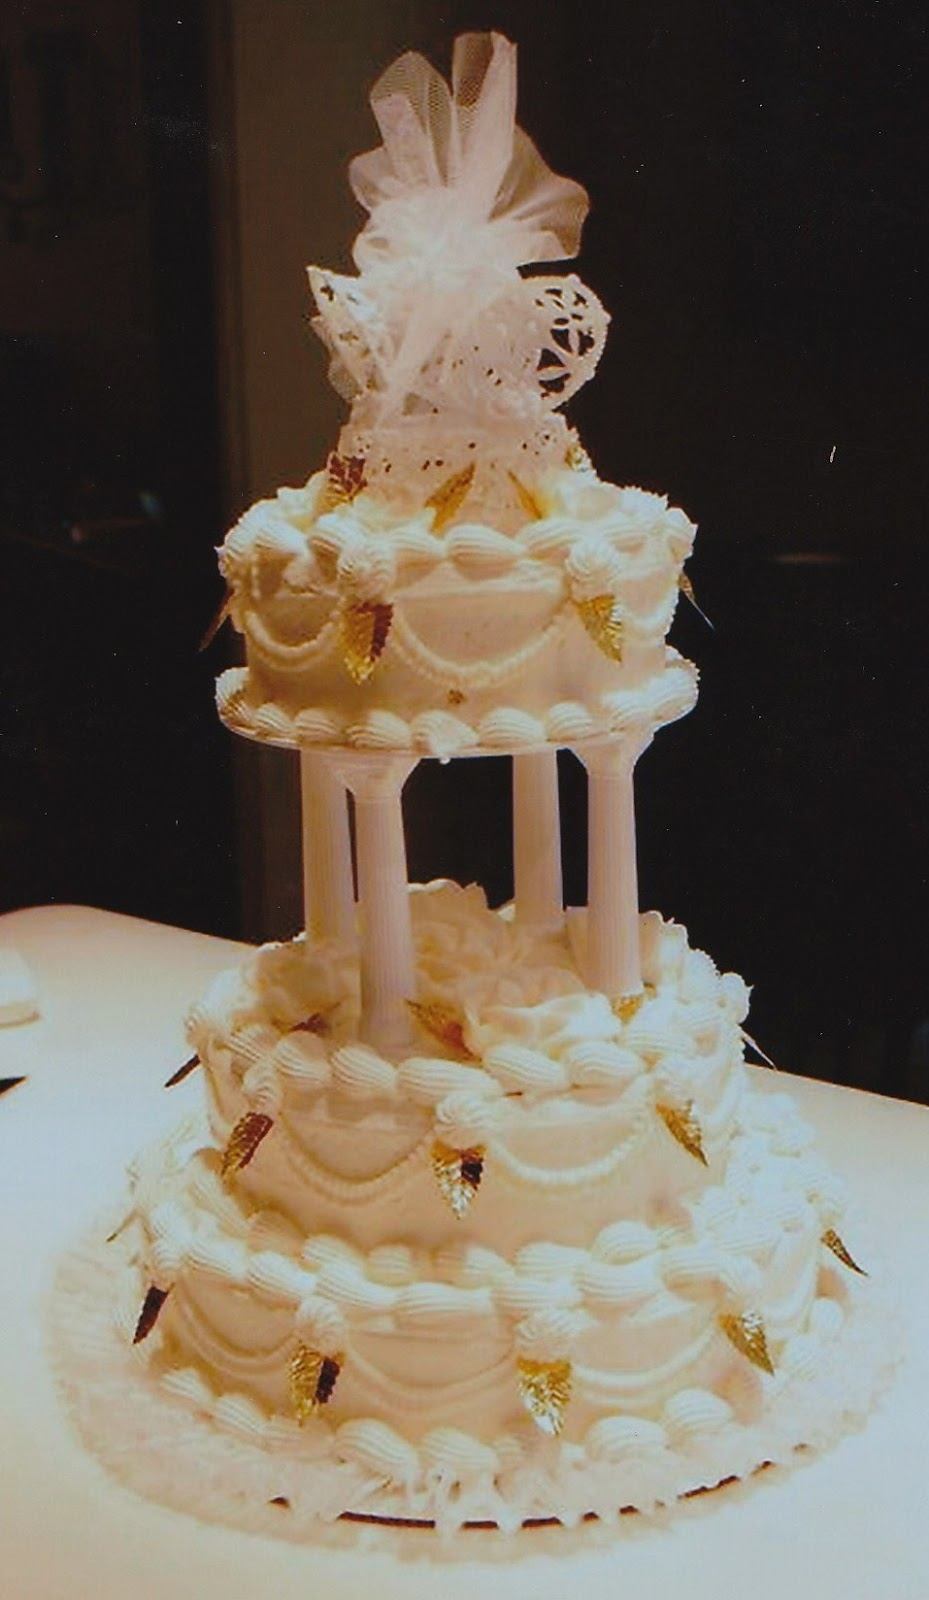 Haegeles bakery philadelphia german bakery weddings white with our soft buttercream icing the dramatic drapes and trims are trademark of the traditional style of decorating white roses on white icing mightylinksfo